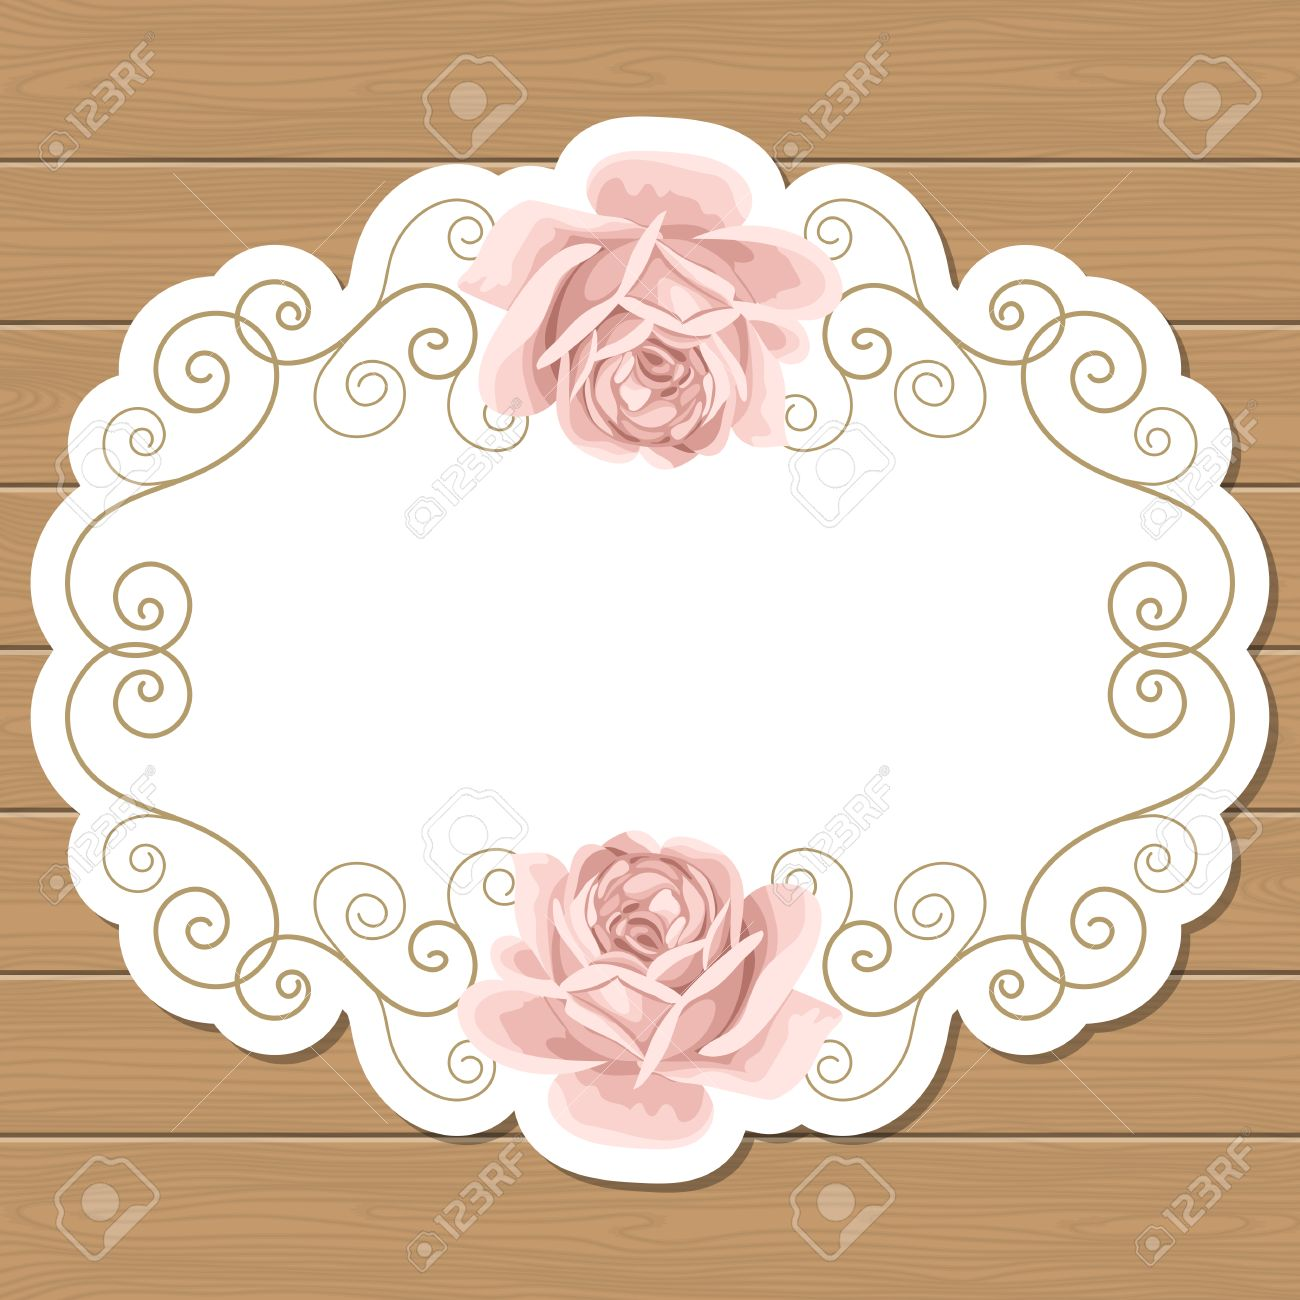 Wood Background With Hand Draw Roses And Gold Curly Oval Frame Shabby Chic Vector Illustration